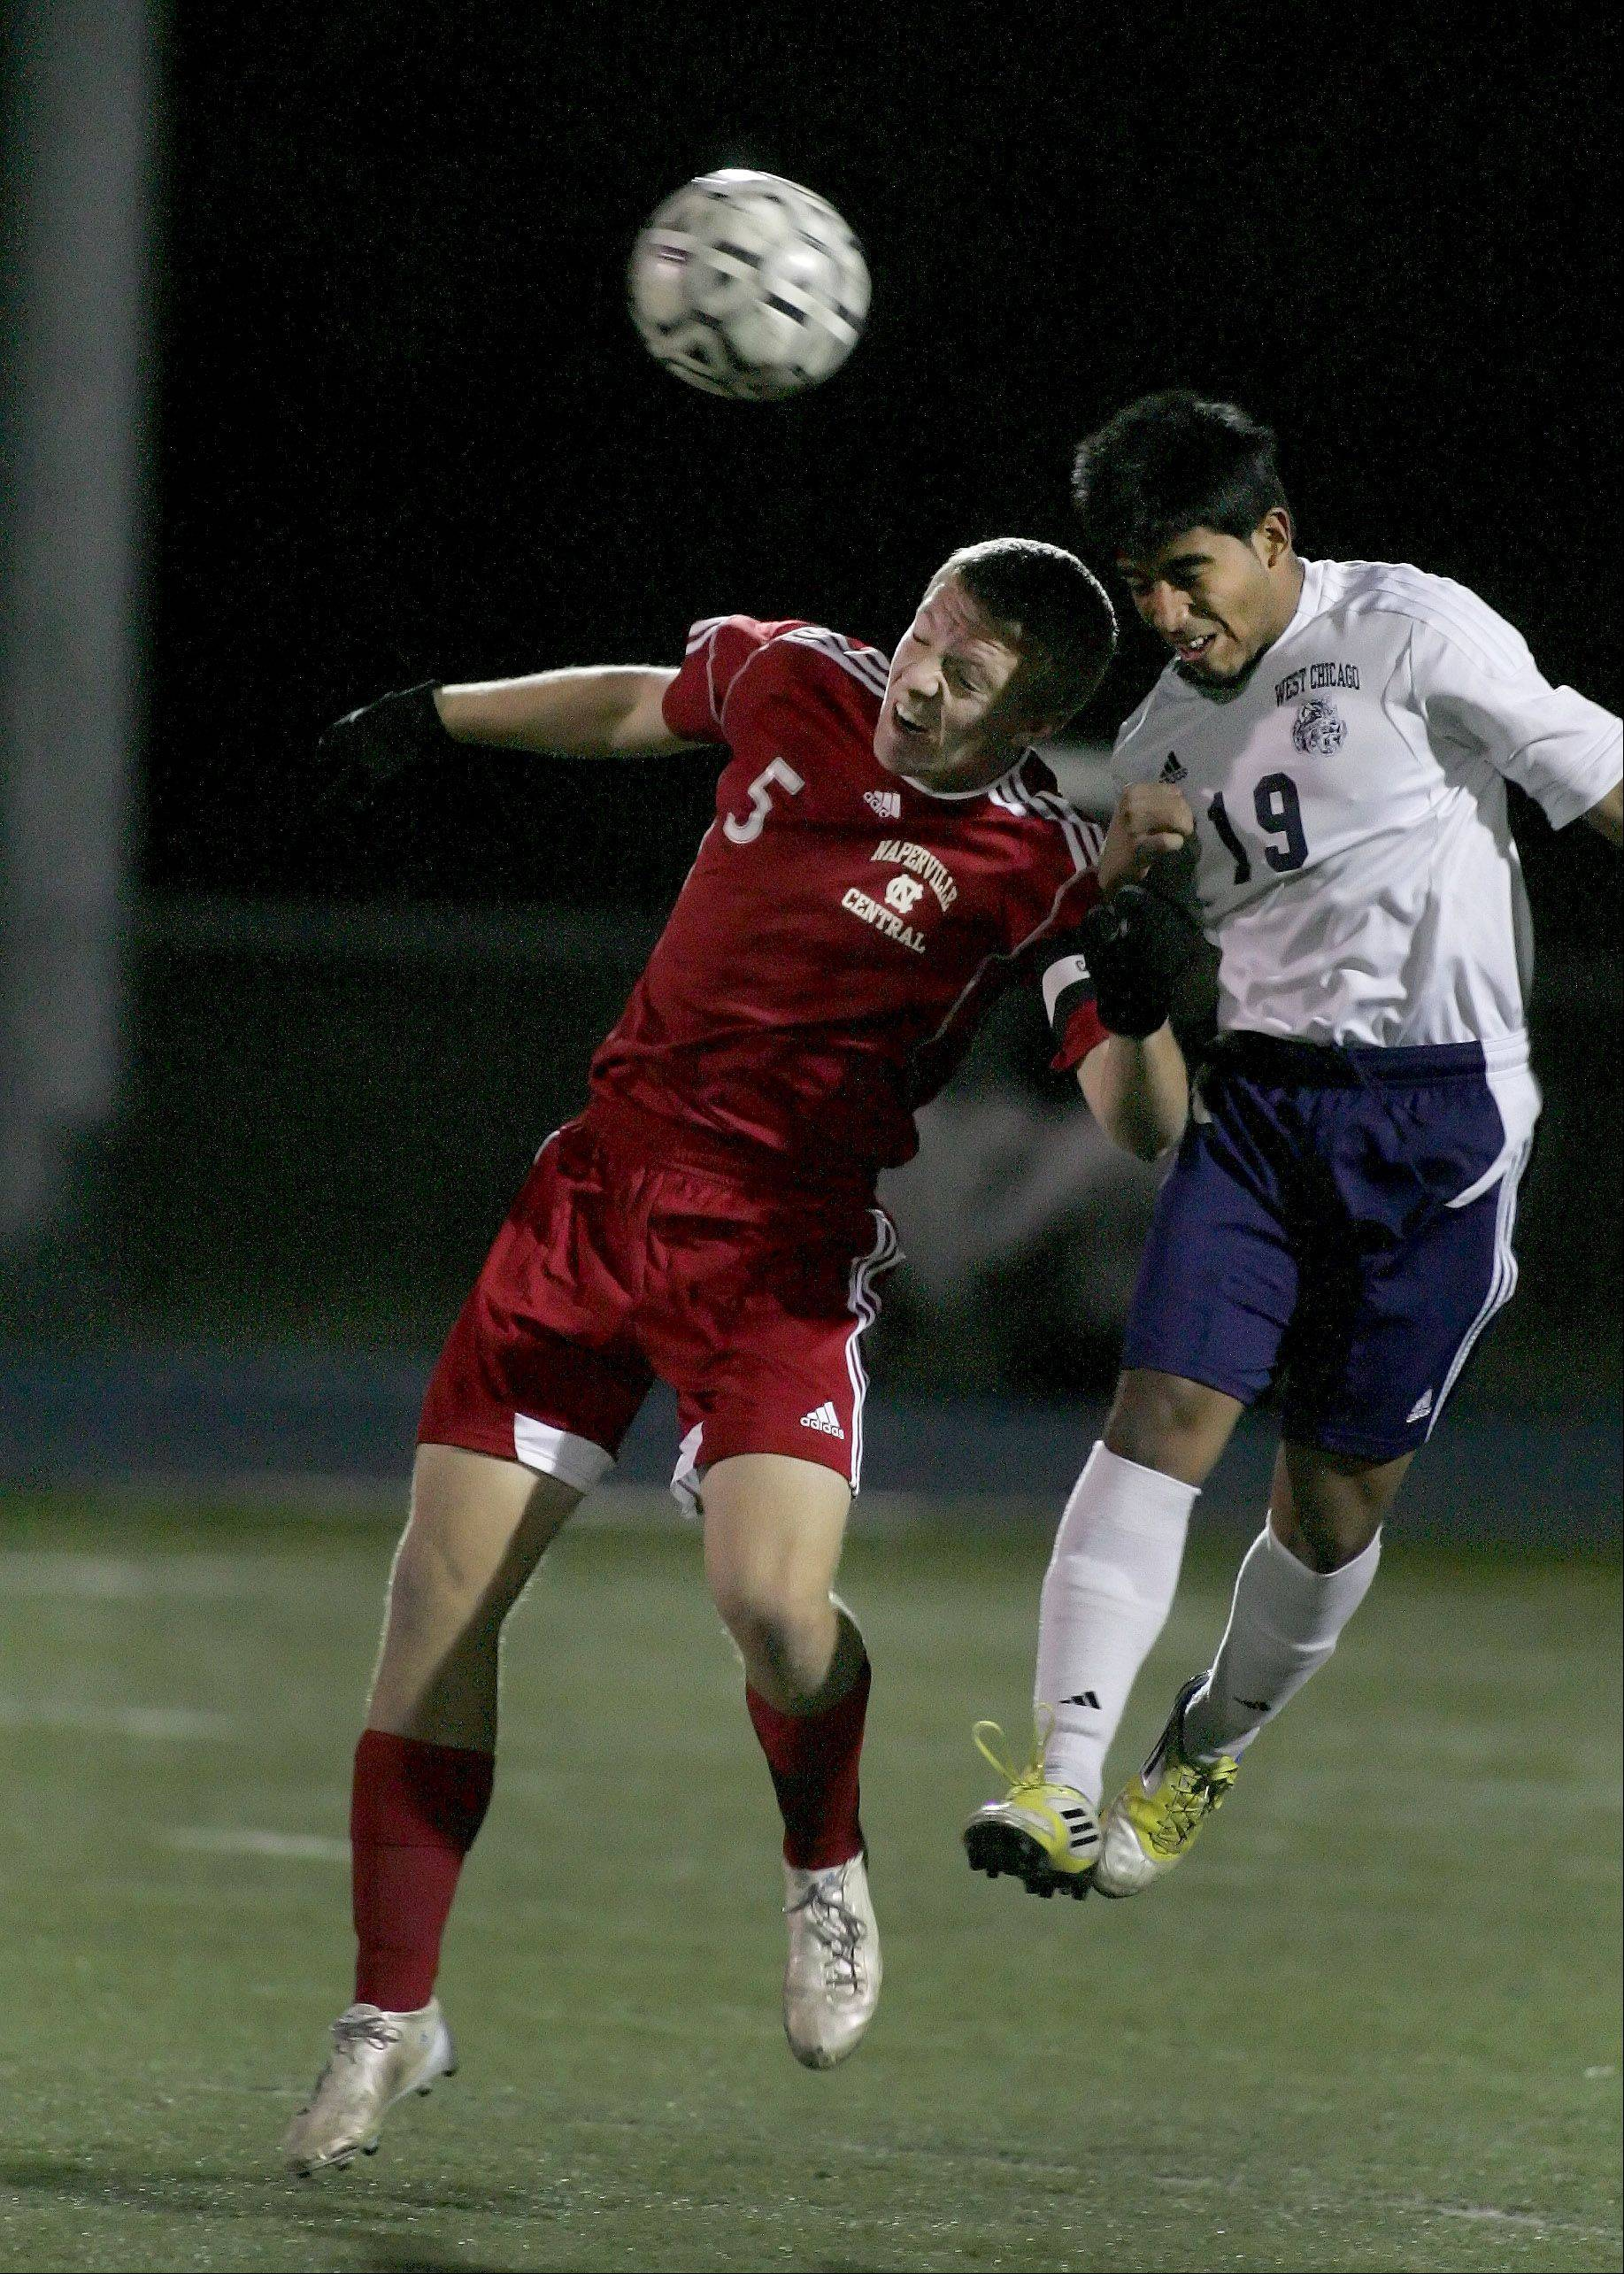 Pat Flynn of Naperville Central, left, and Giovannie Altamirano, right, of West Chicago in boys soccer action on Tuesday.